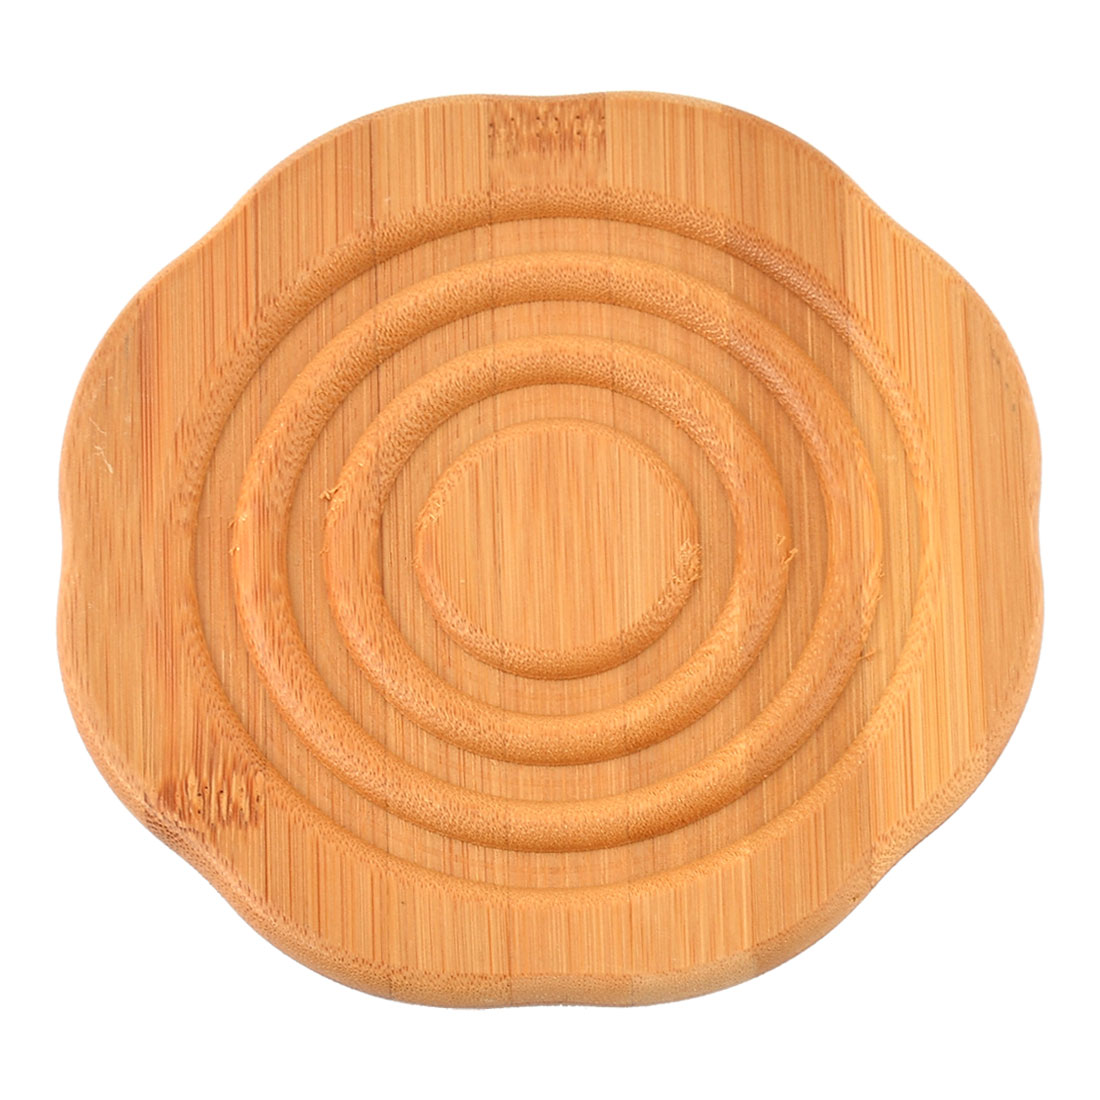 Bamboo Round Shape Heat Resistant Kitchen Table Pot Cup Mat Cushion